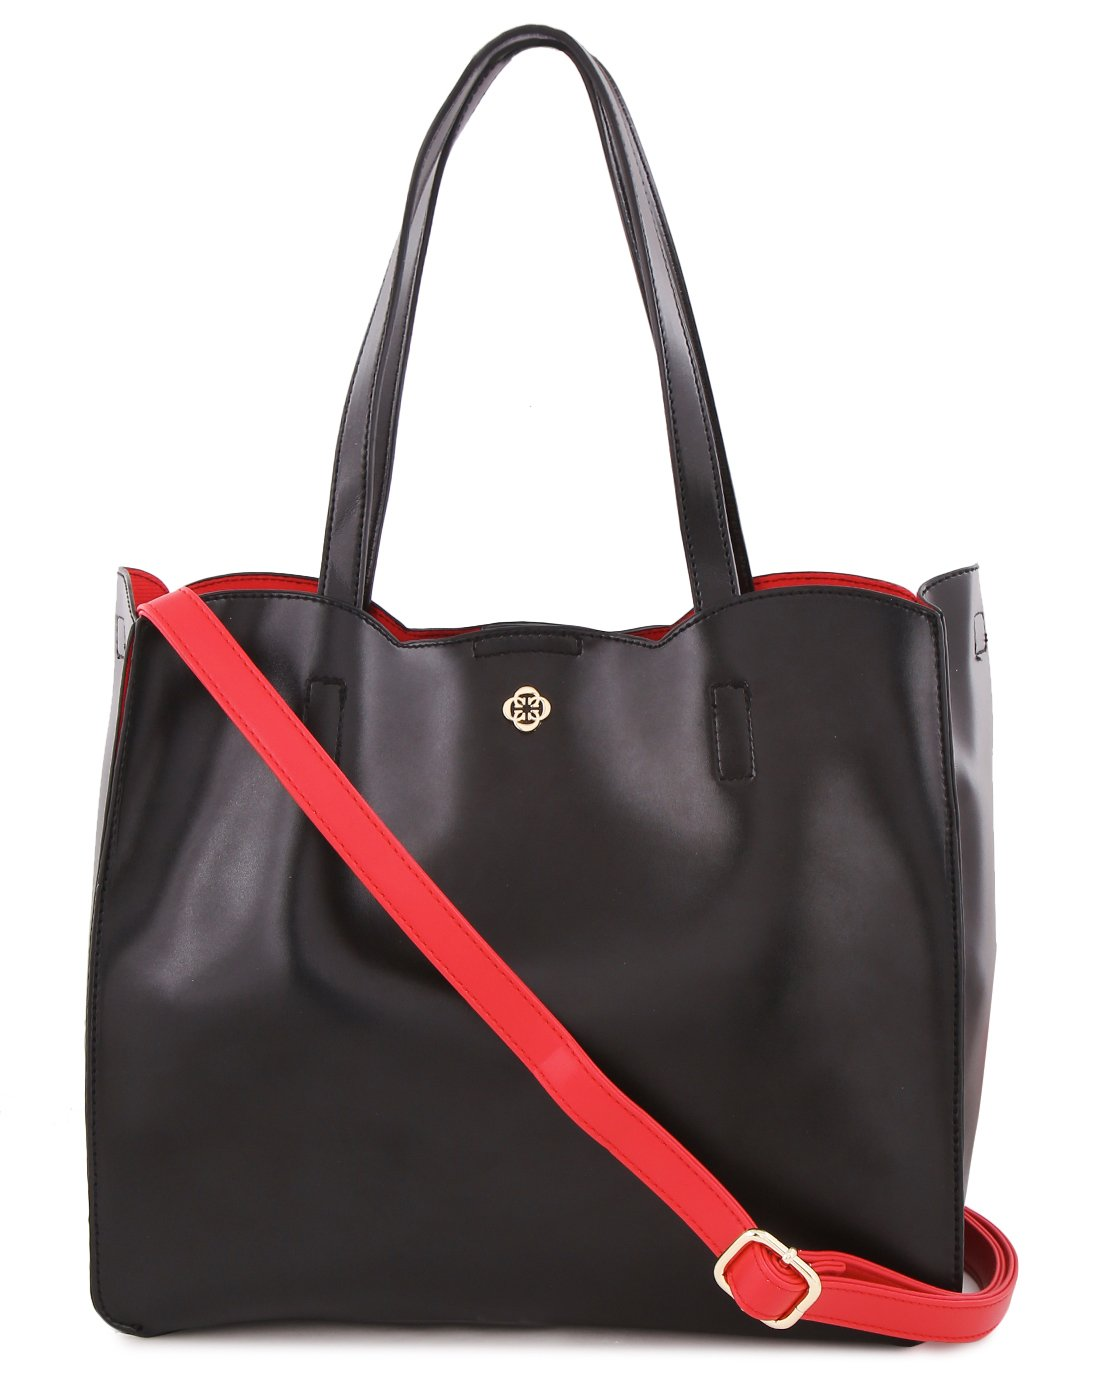 Wodan Scallop Tote Bag